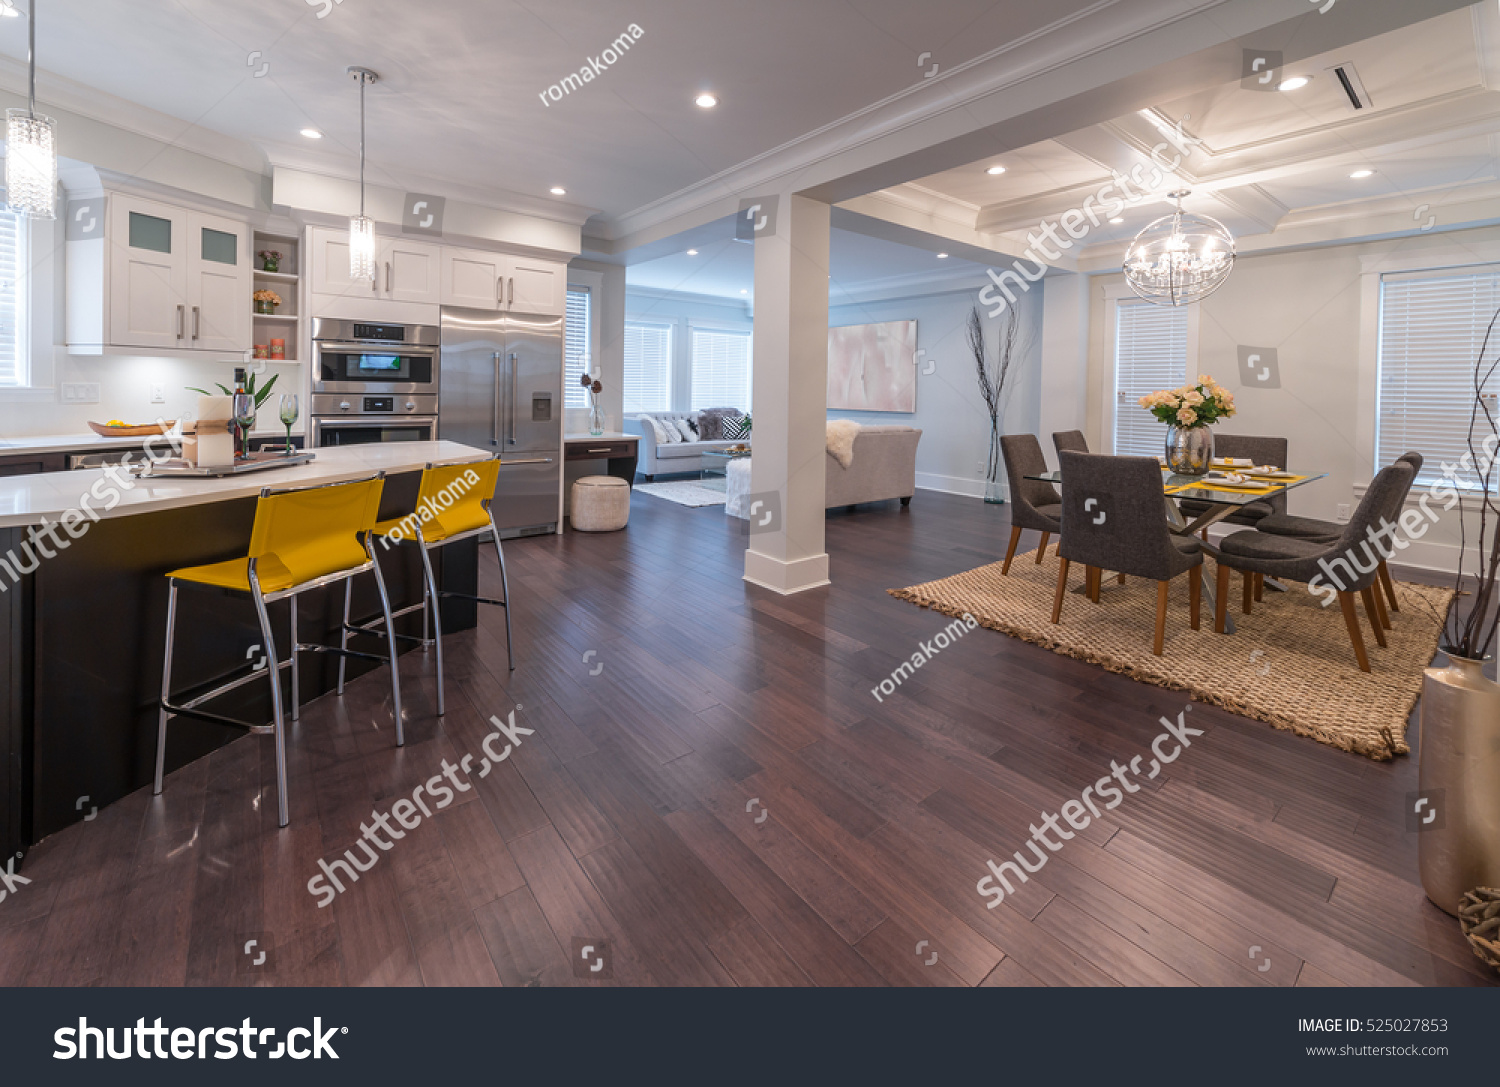 Luxury modern kitchen dining room area stock photo for Dining area interior